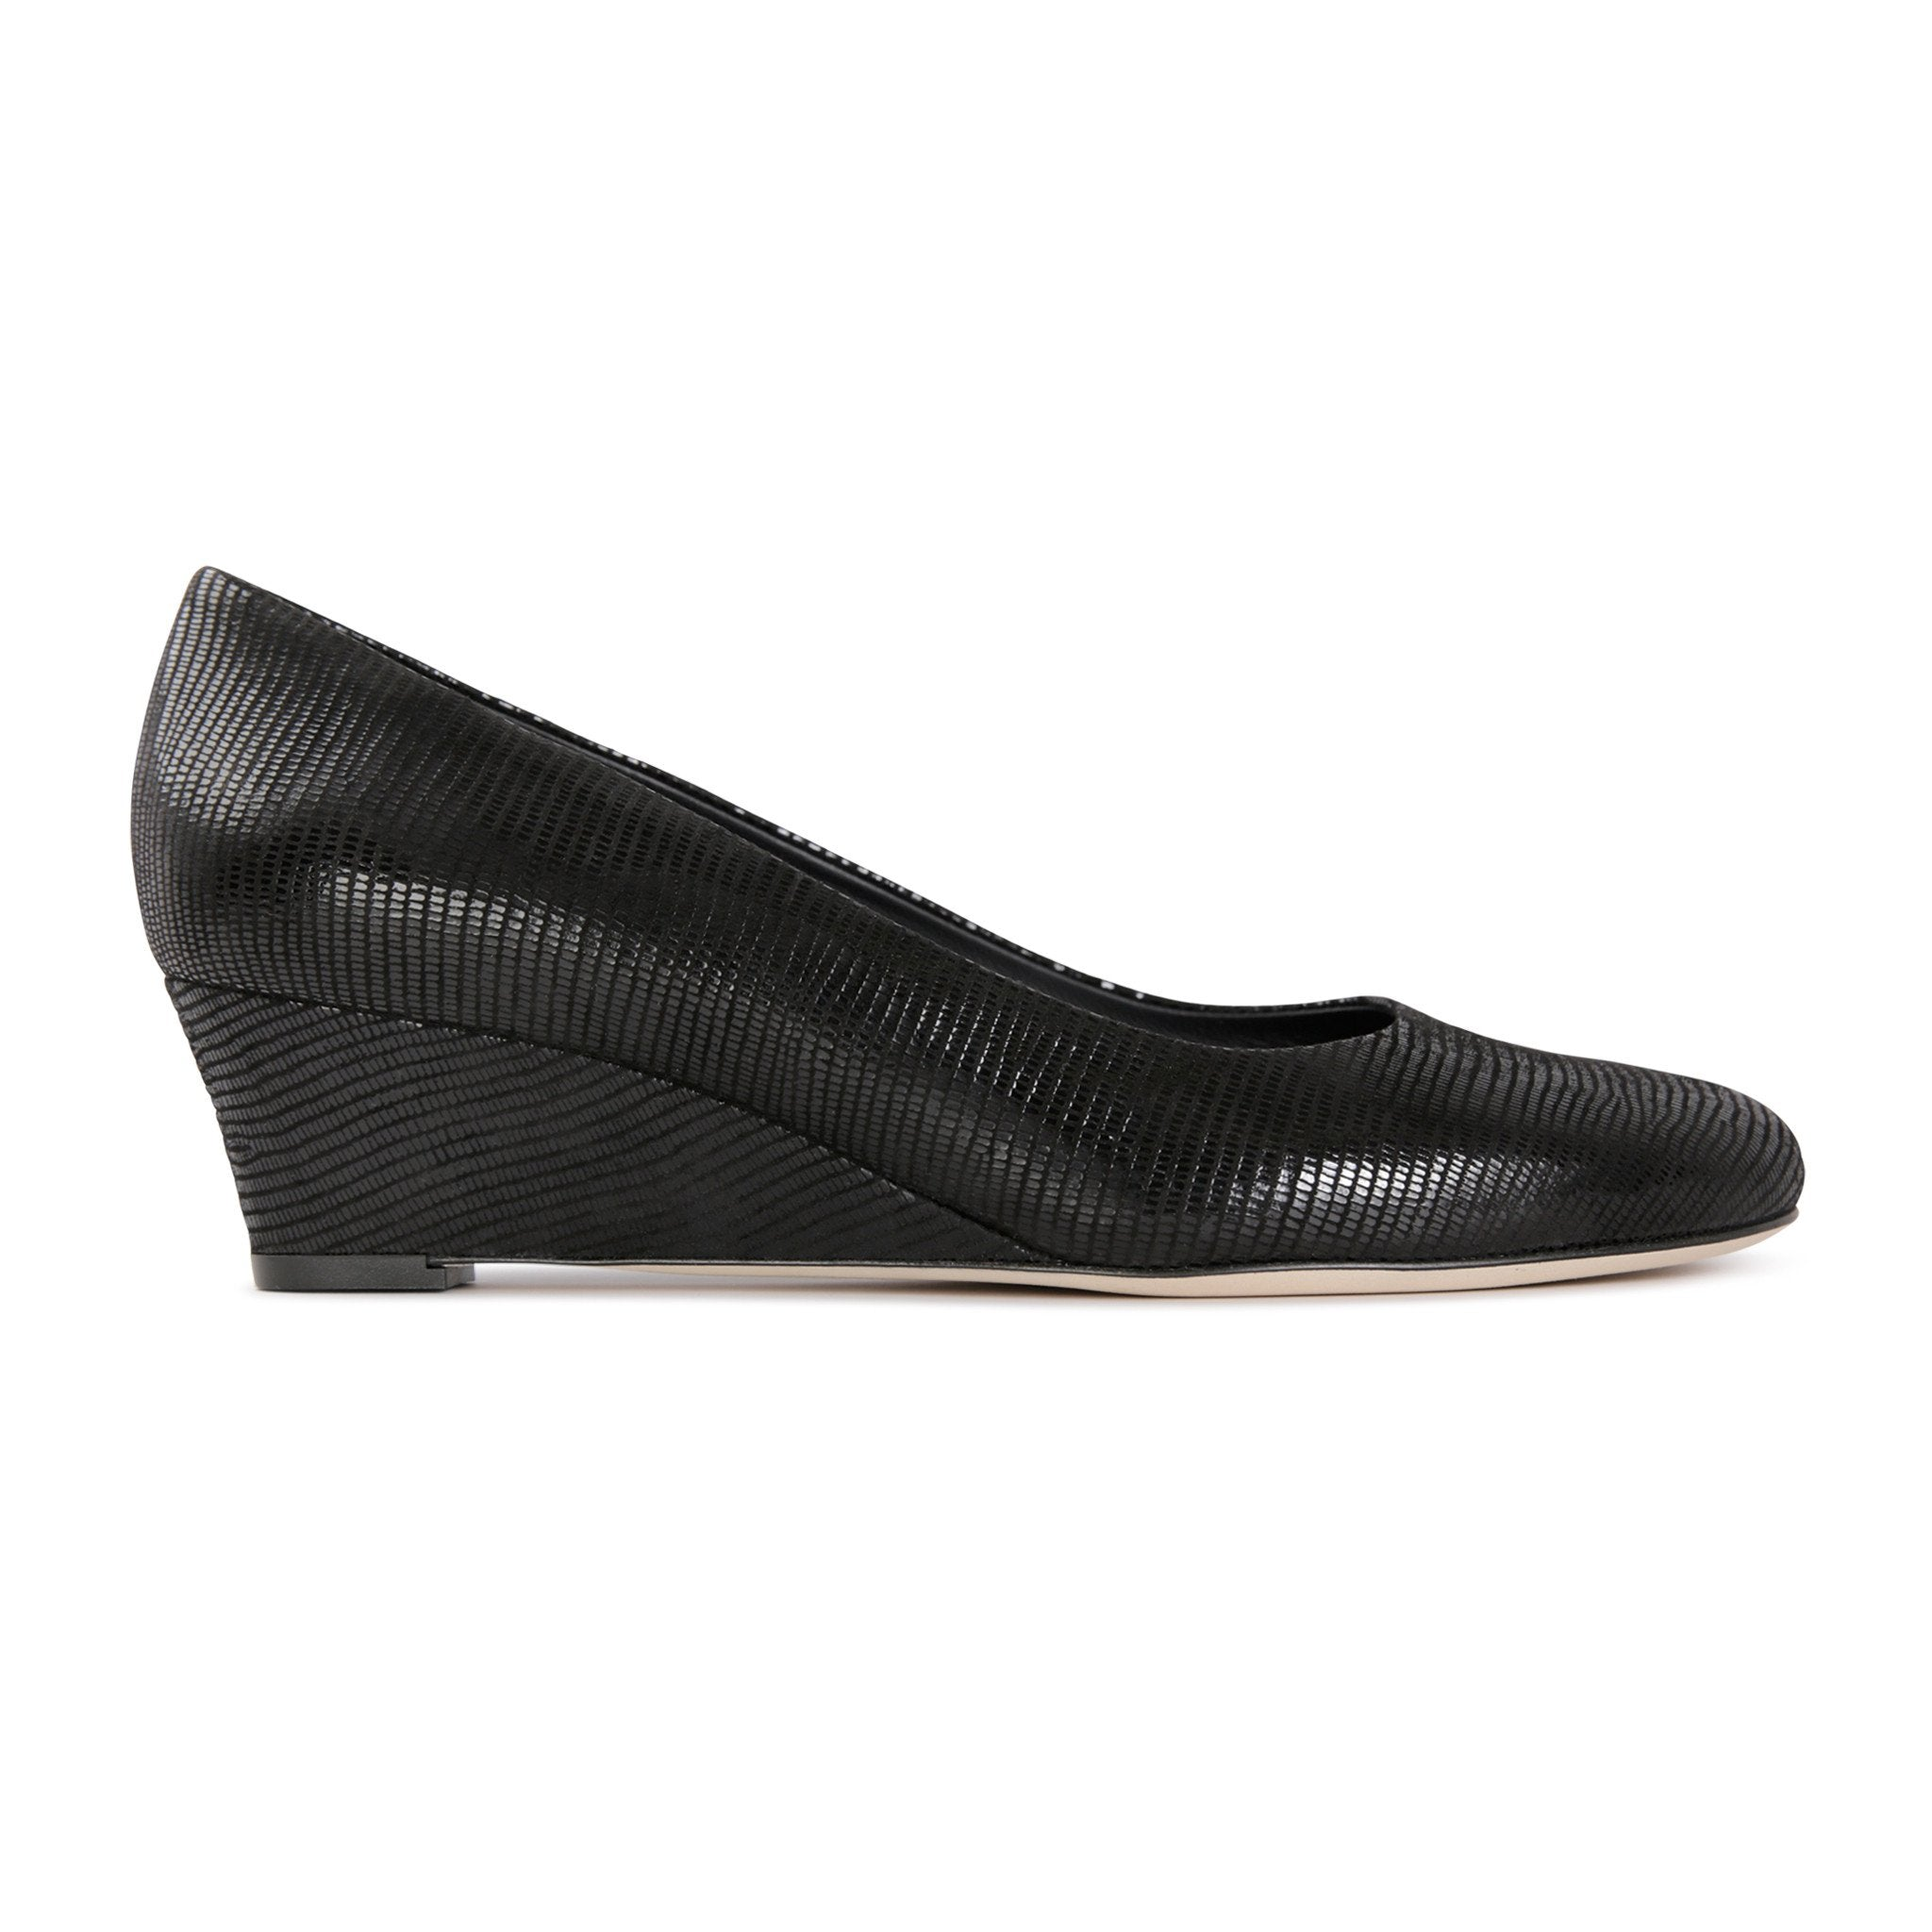 BERGAMO - Varanus Nero, VIAJIYU - Women's Hand Made Sustainable Luxury Shoes. Made in Italy. Made to Order.